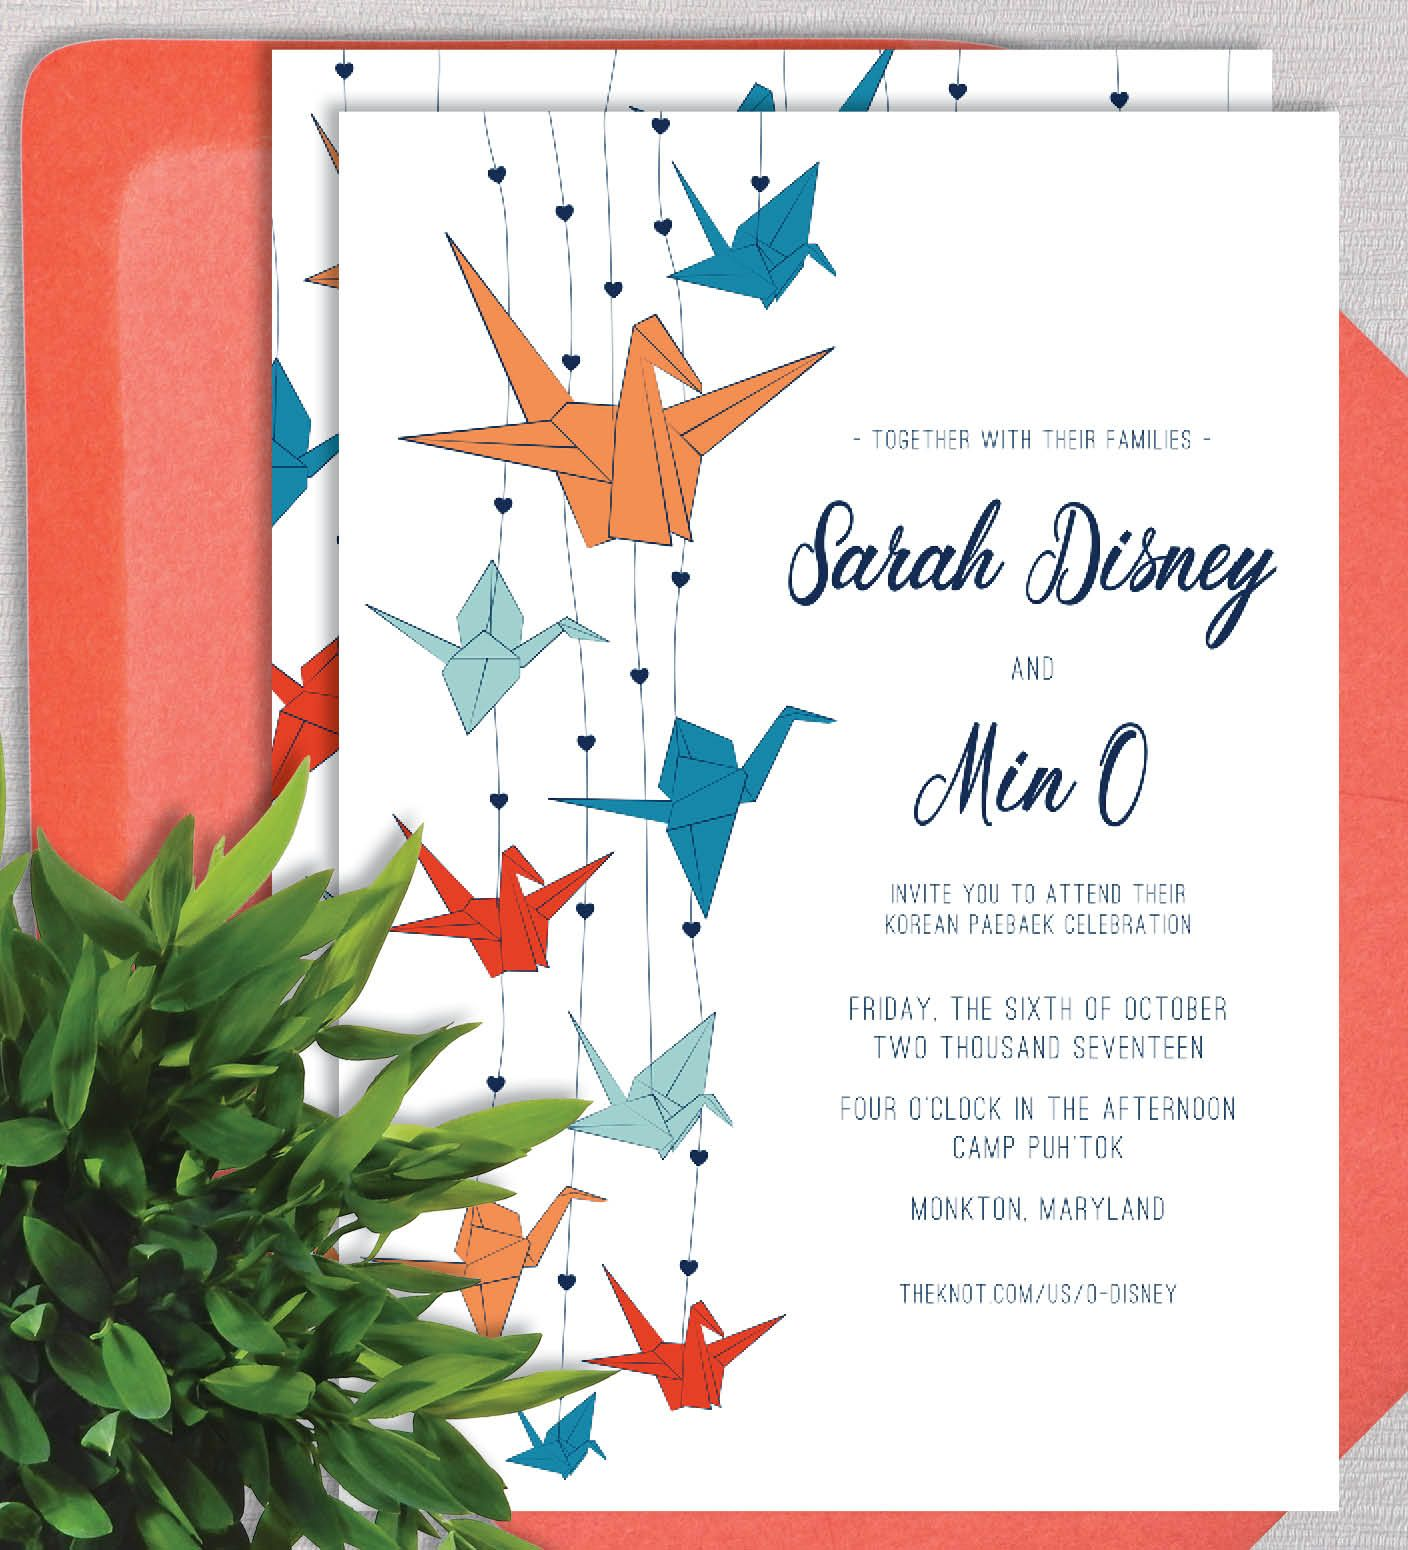 Cranes Of Love Wedding Invitation Suite By Ealexdesigns